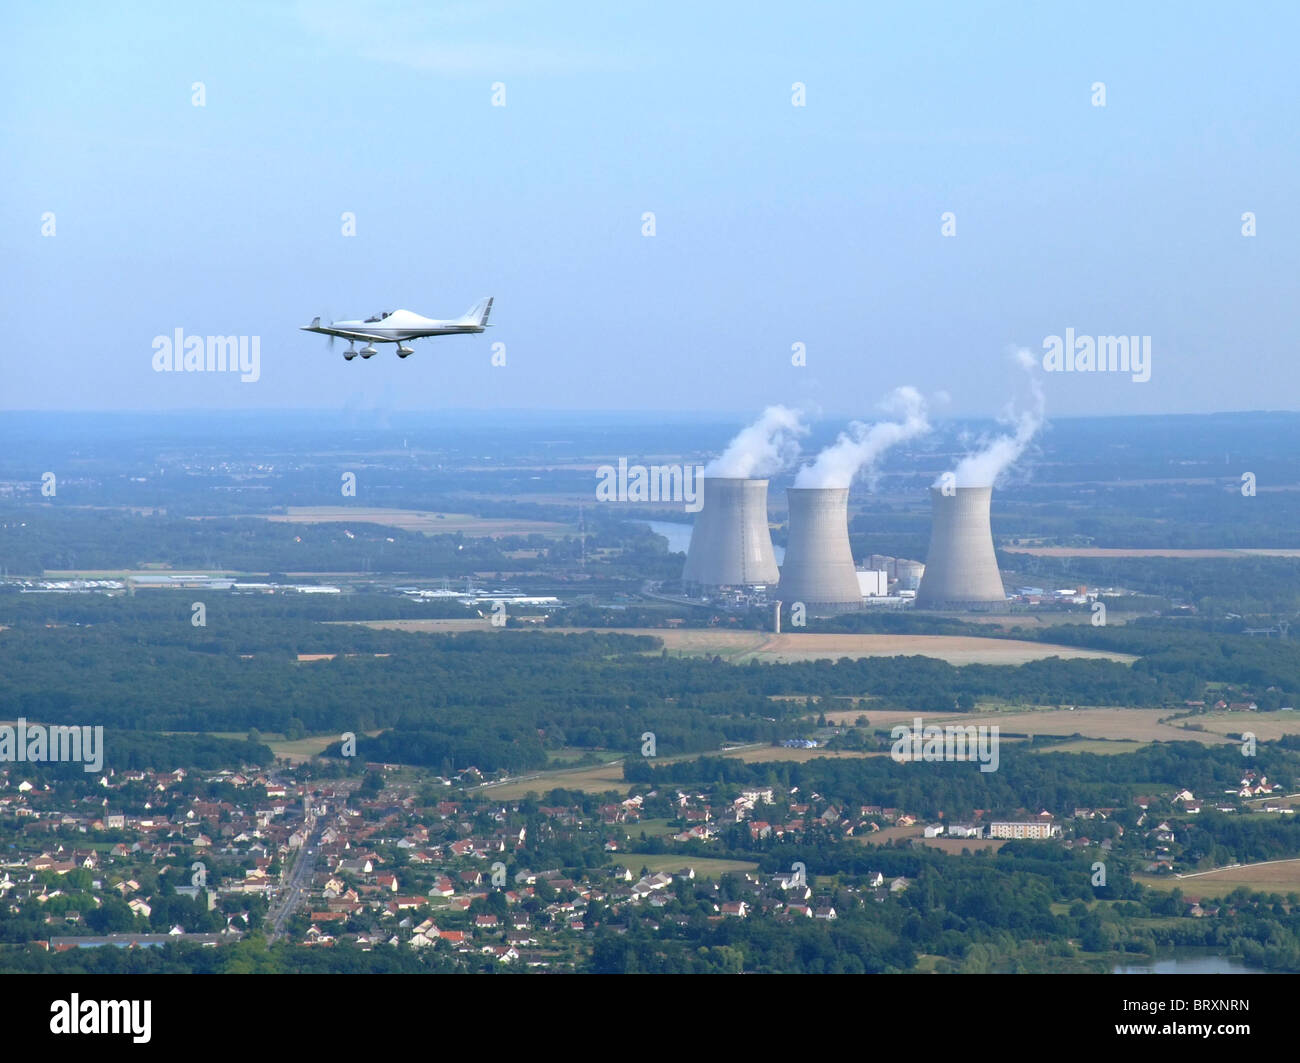 Private plane flying close to the EDF nuclear powerplants of Dampierre en Burly, Loiret, Centre region, France - Stock Image